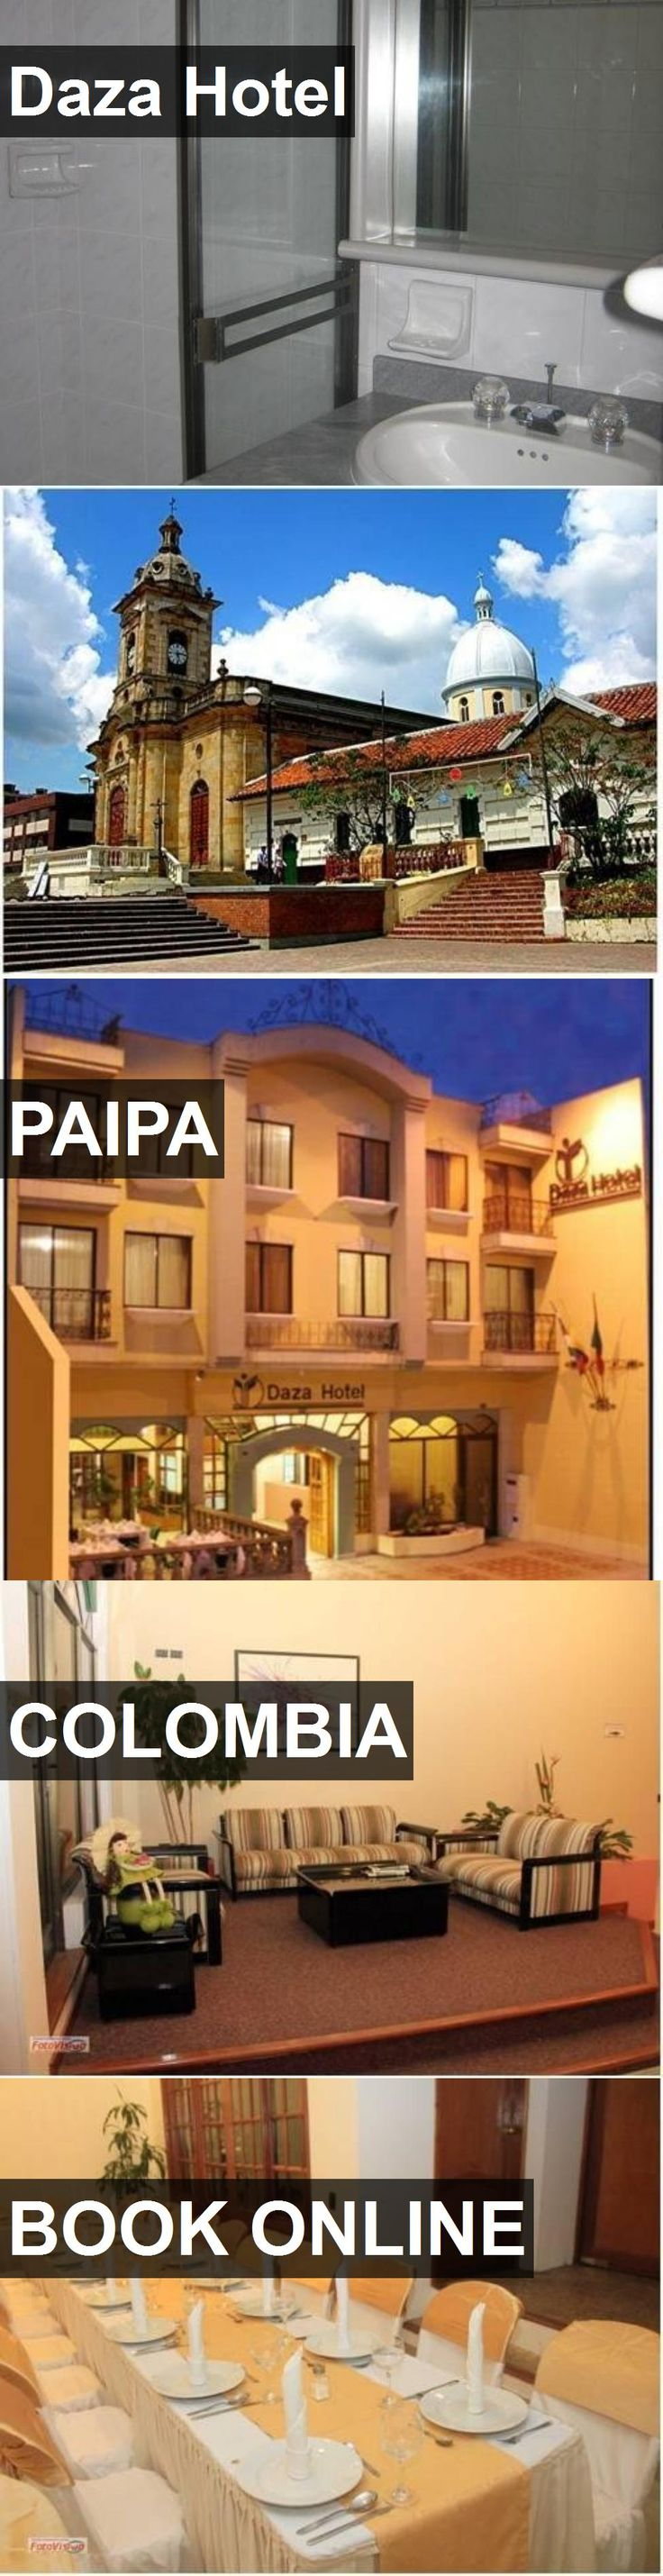 Hotel Daza Hotel in Paipa, Colombia. For more information, photos, reviews and best prices please follow the link. #Colombia #Paipa #hotel #travel #vacation